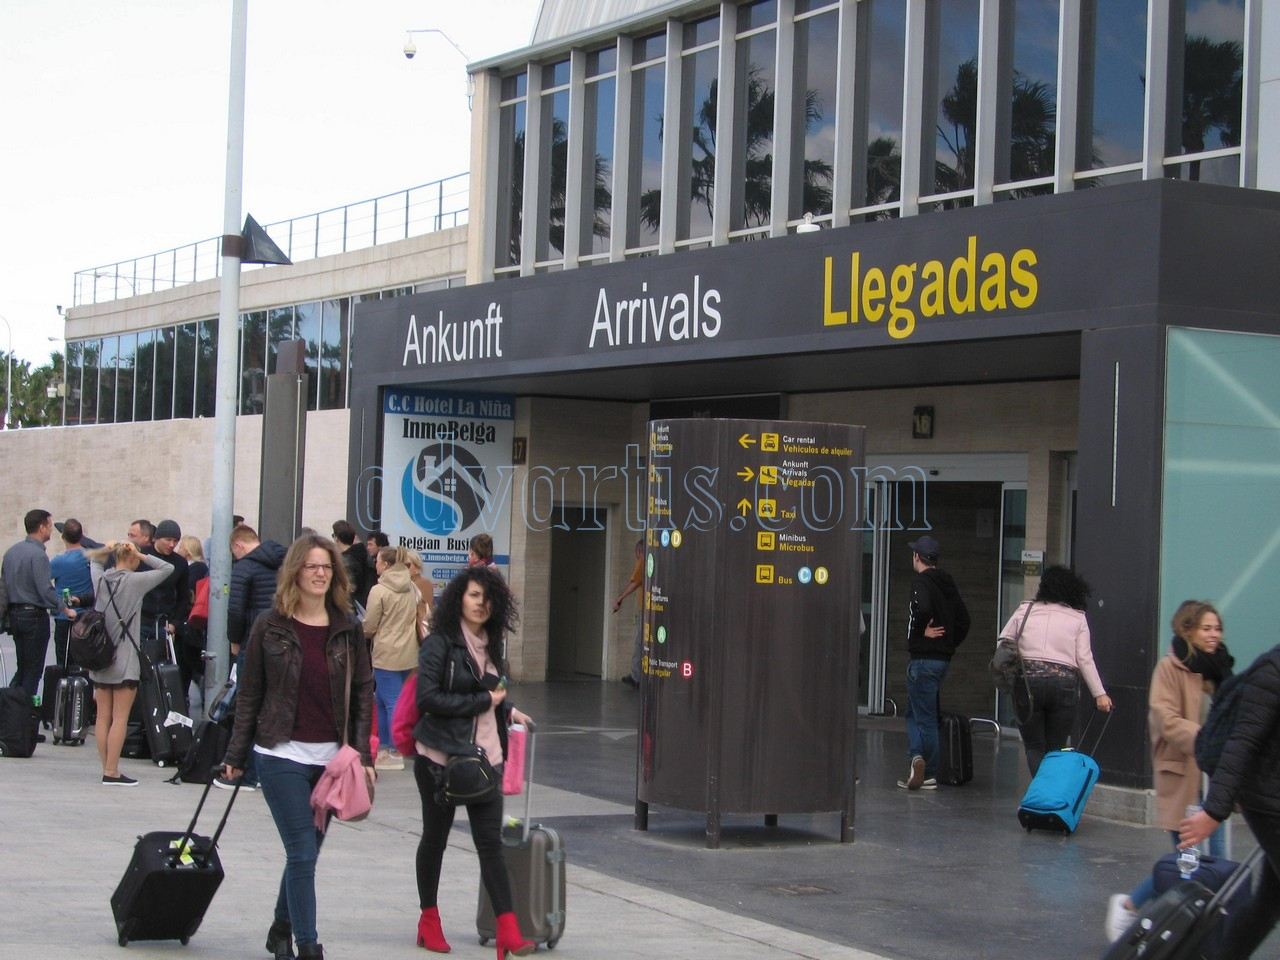 Tenerife south airport Arrivals